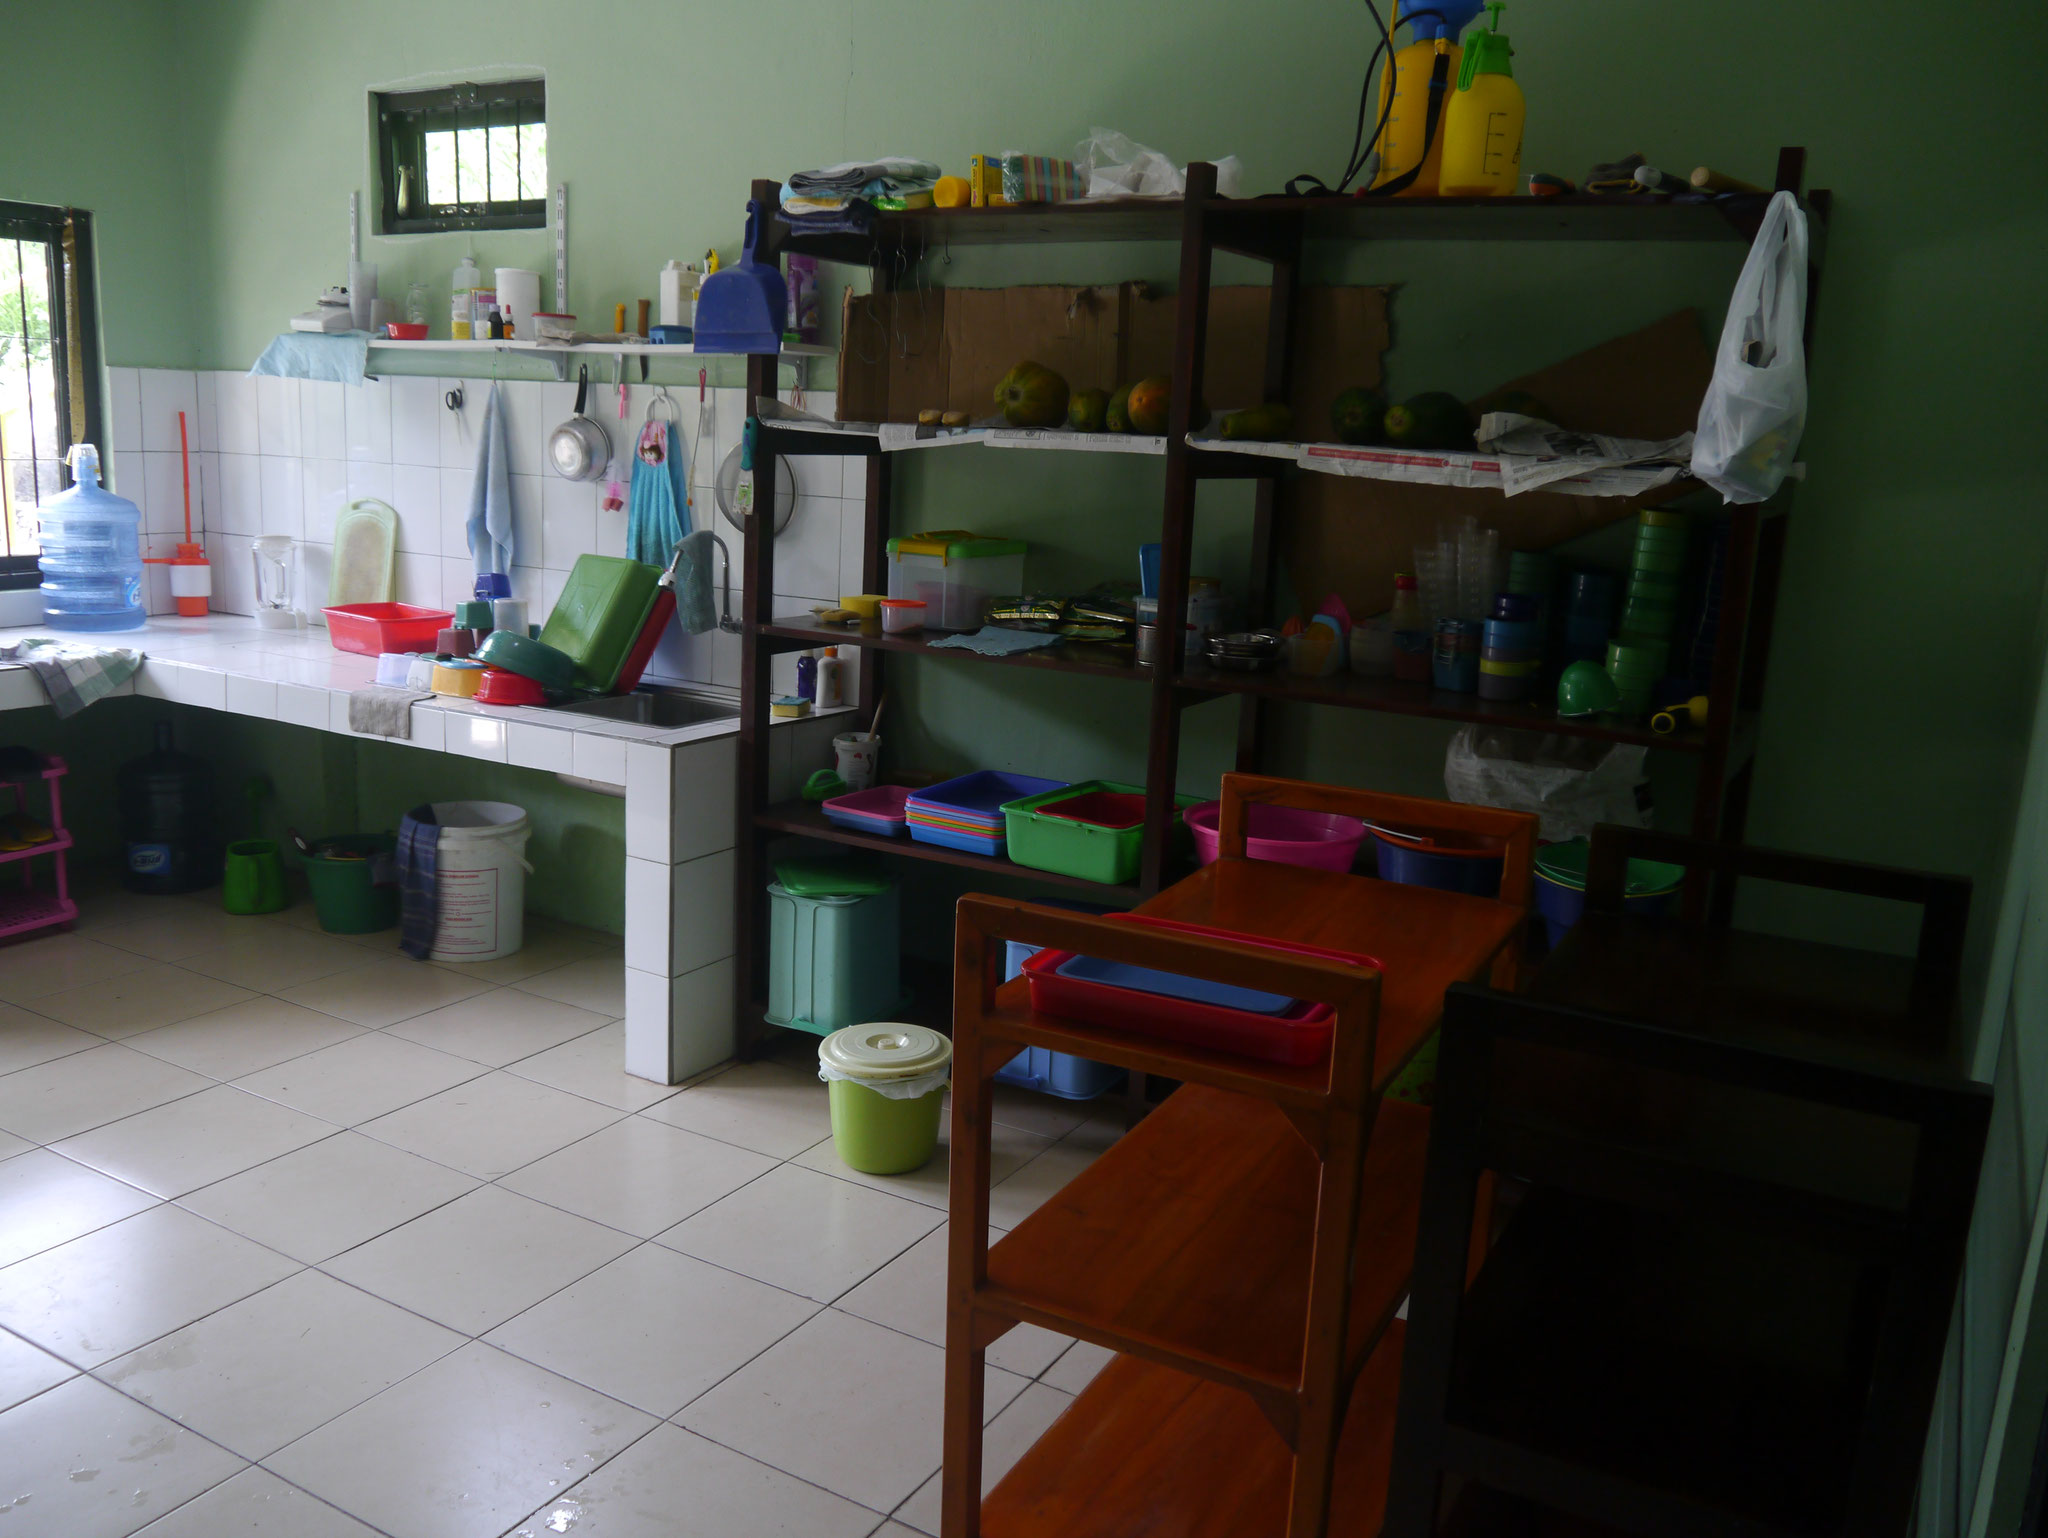 Feeding kitchen